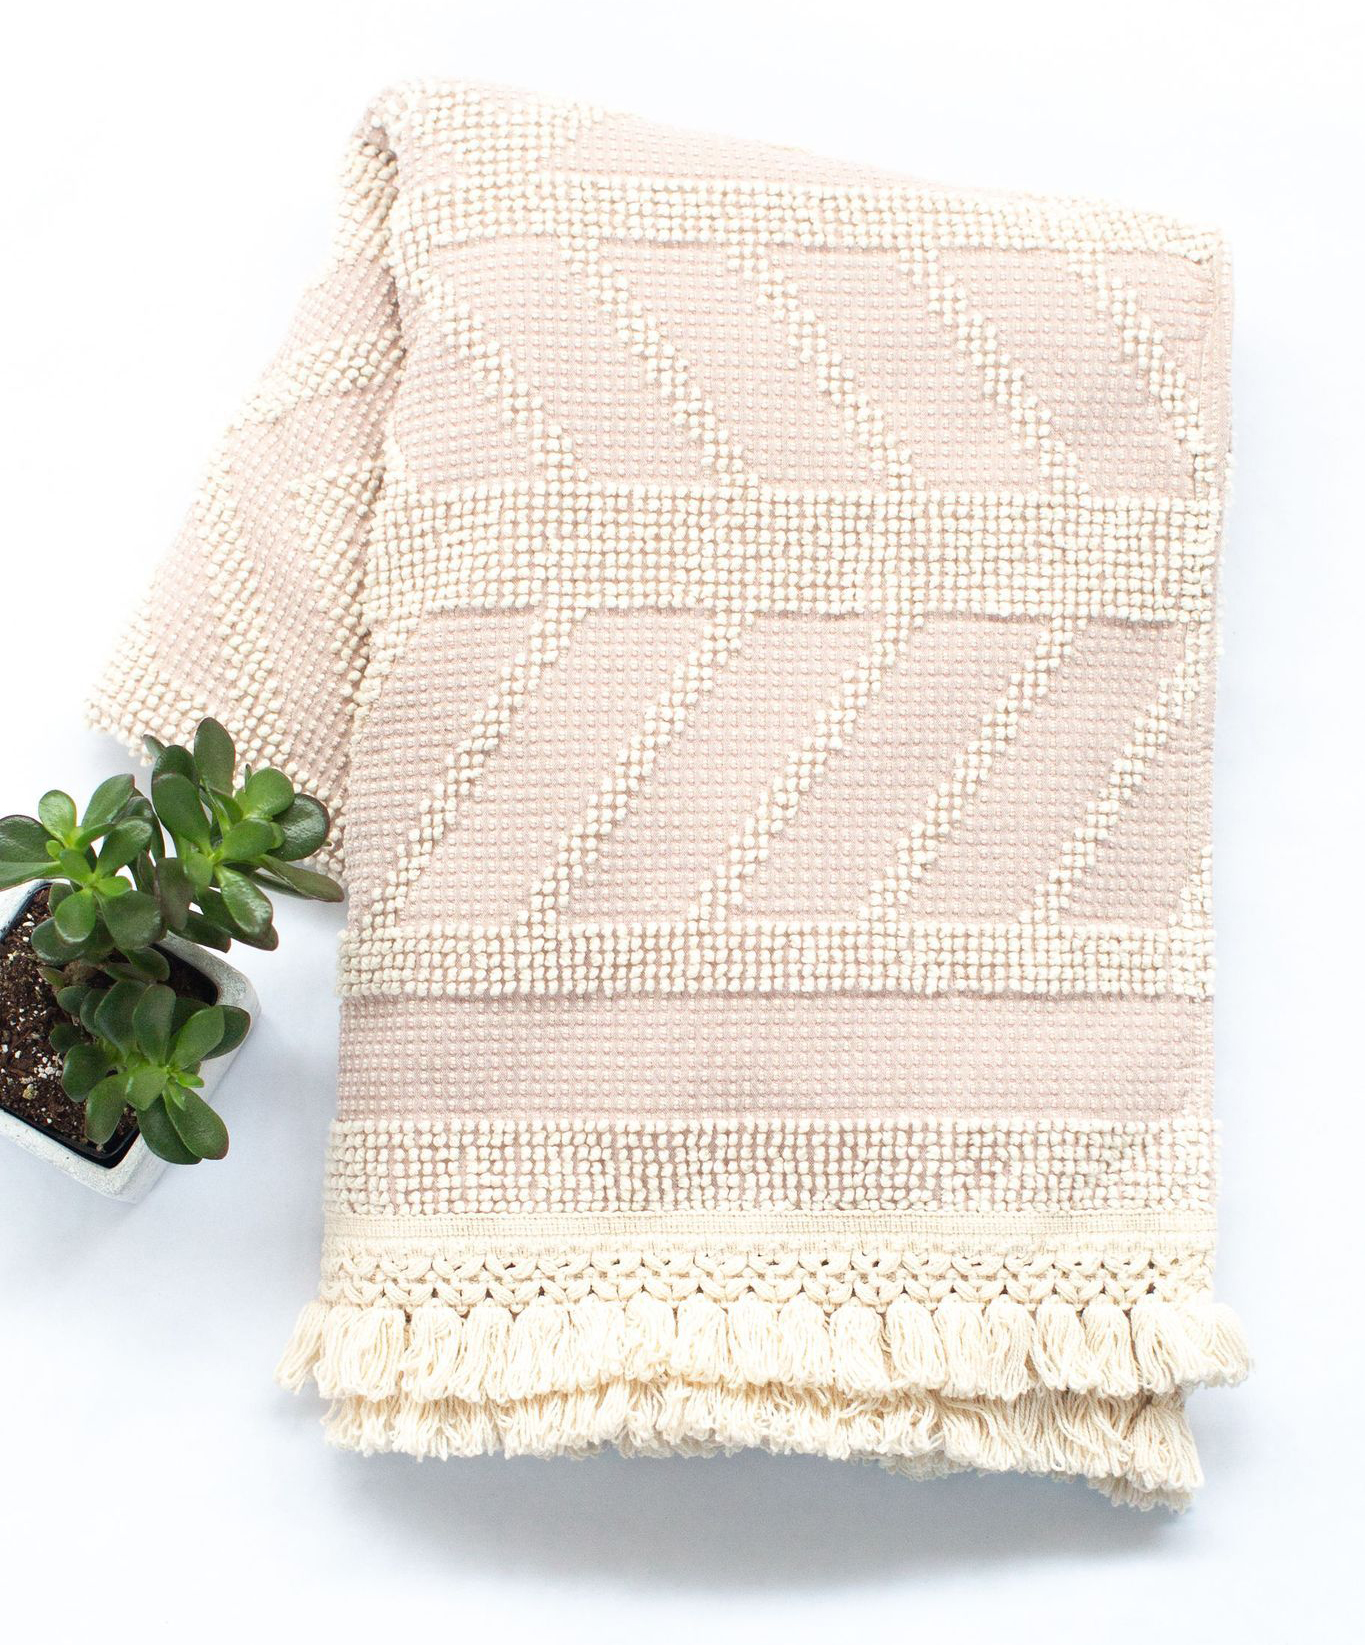 Valentine's Day gifts for her, wife, girlfriend - Sackcloth + Ashes Darling Rose Blanket